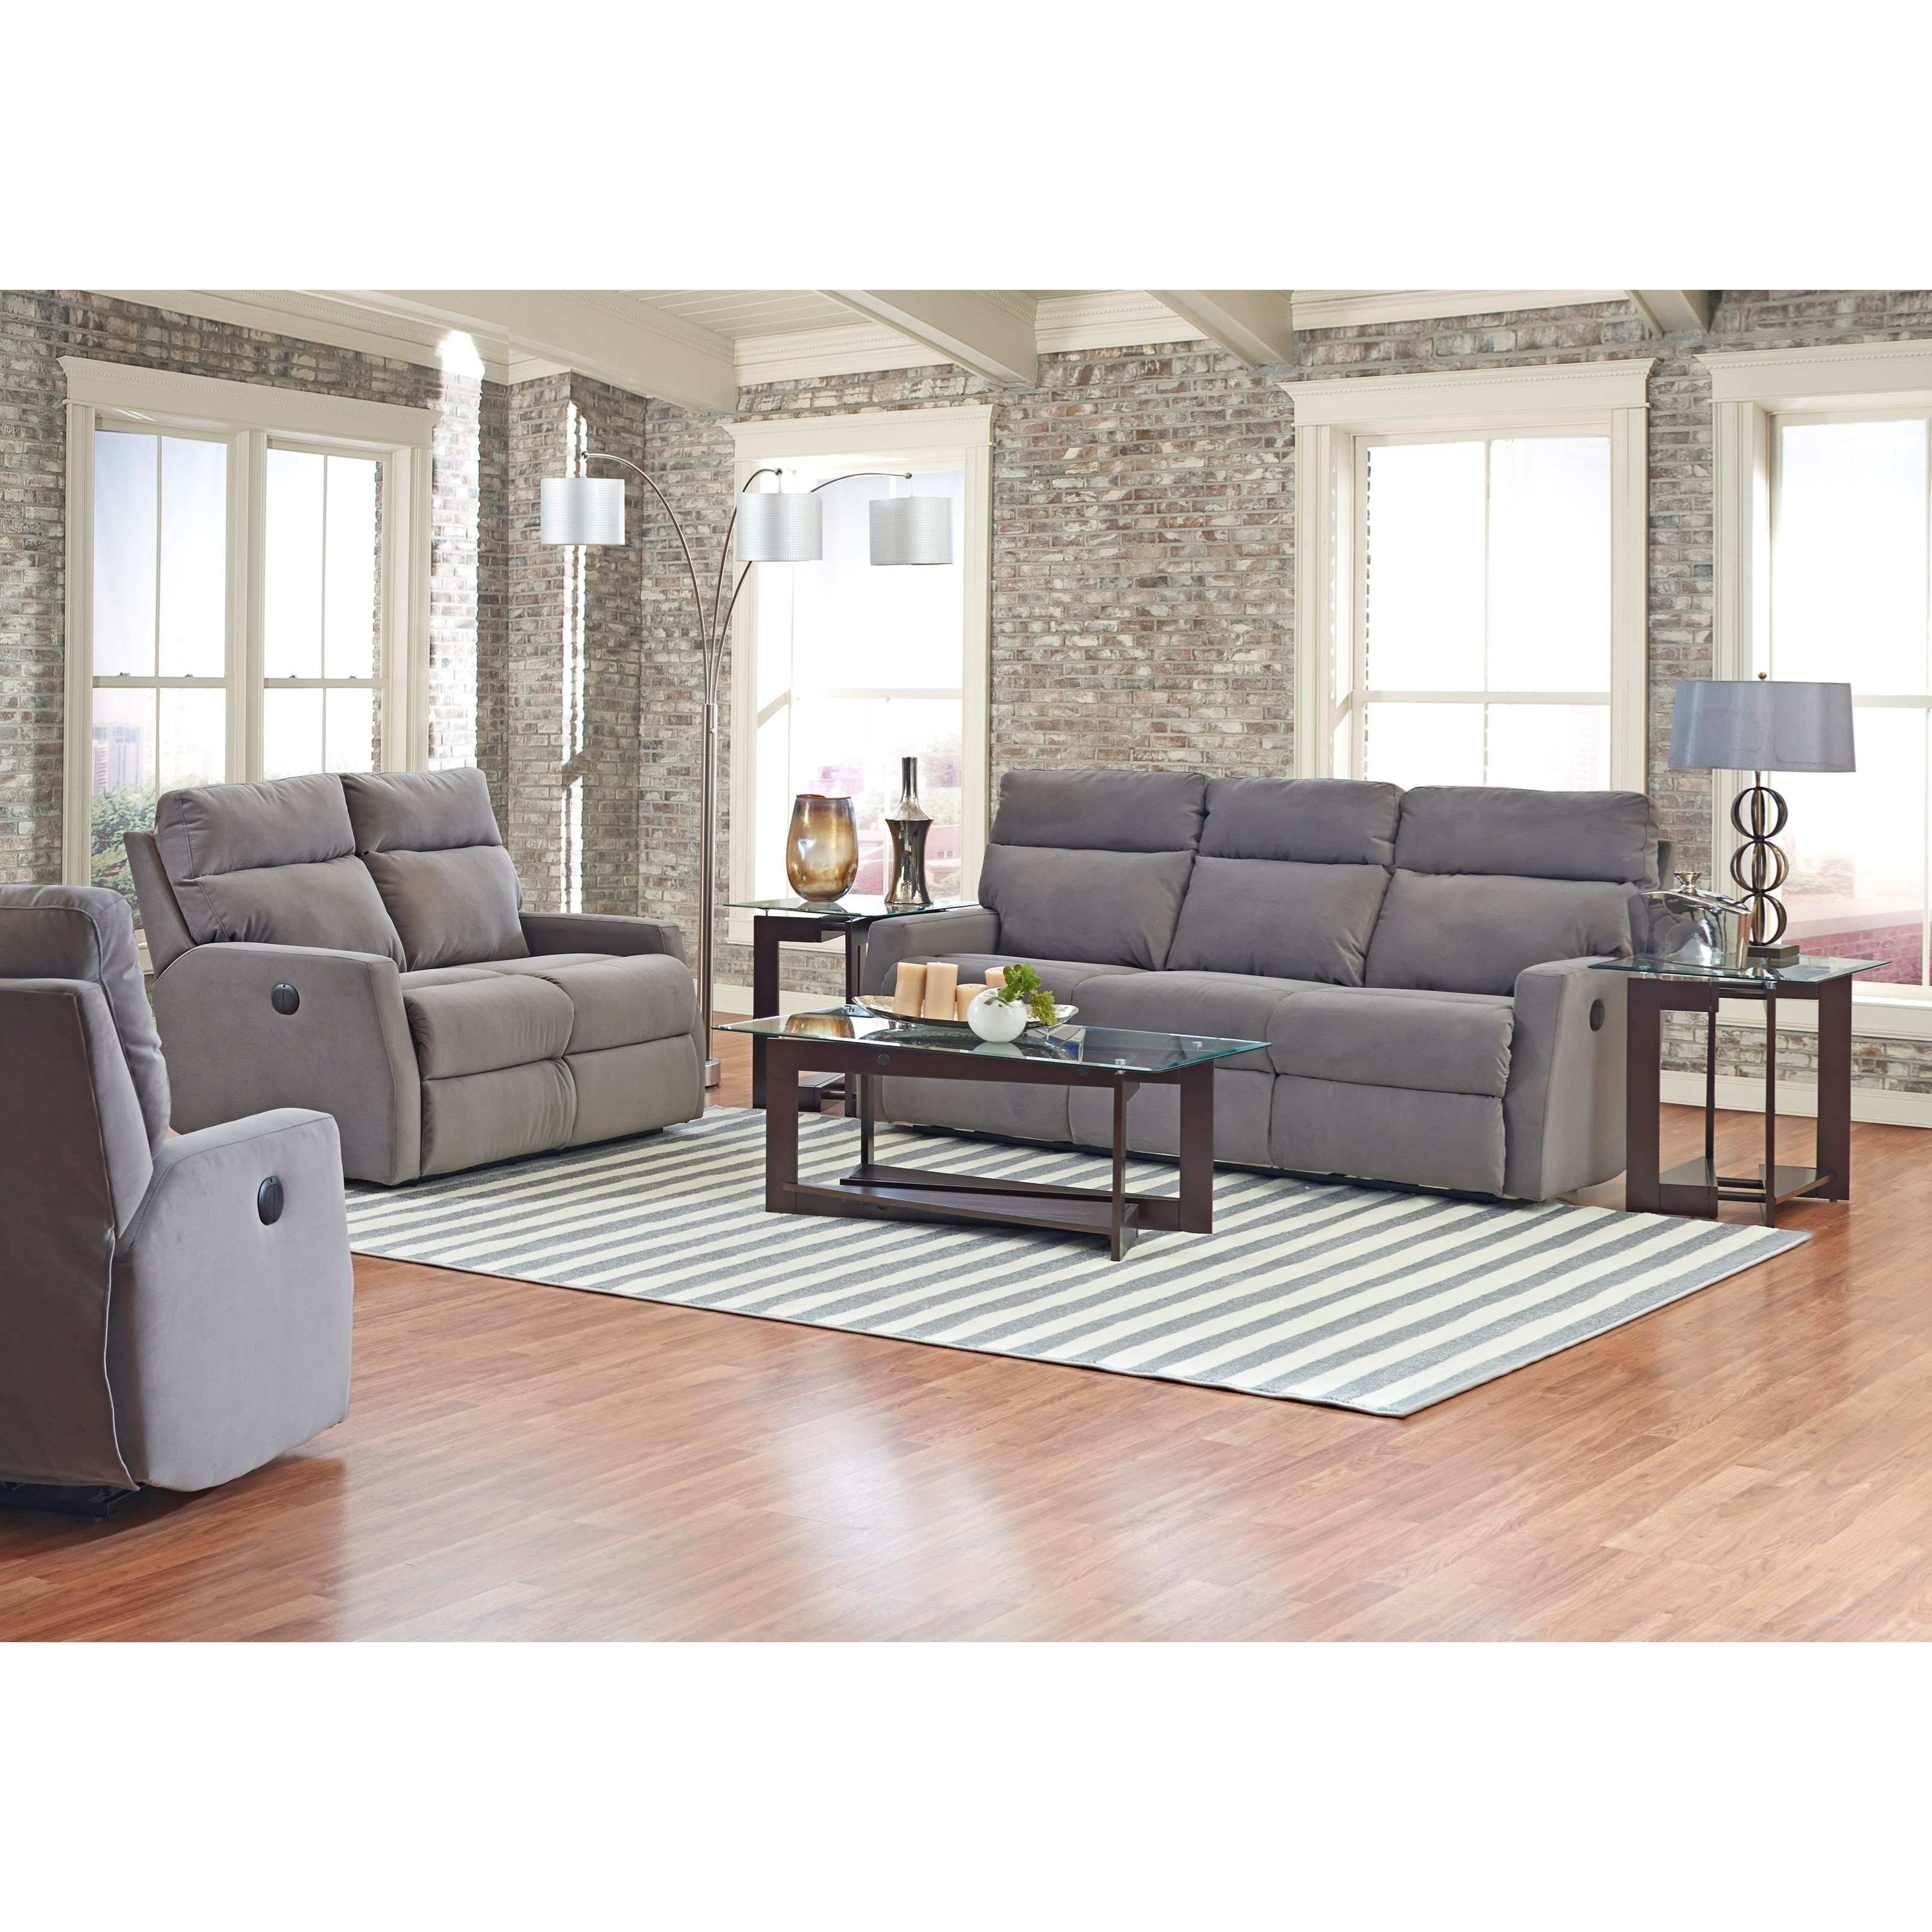 Klaussner Monticello Reclining Living Room Group Wayside